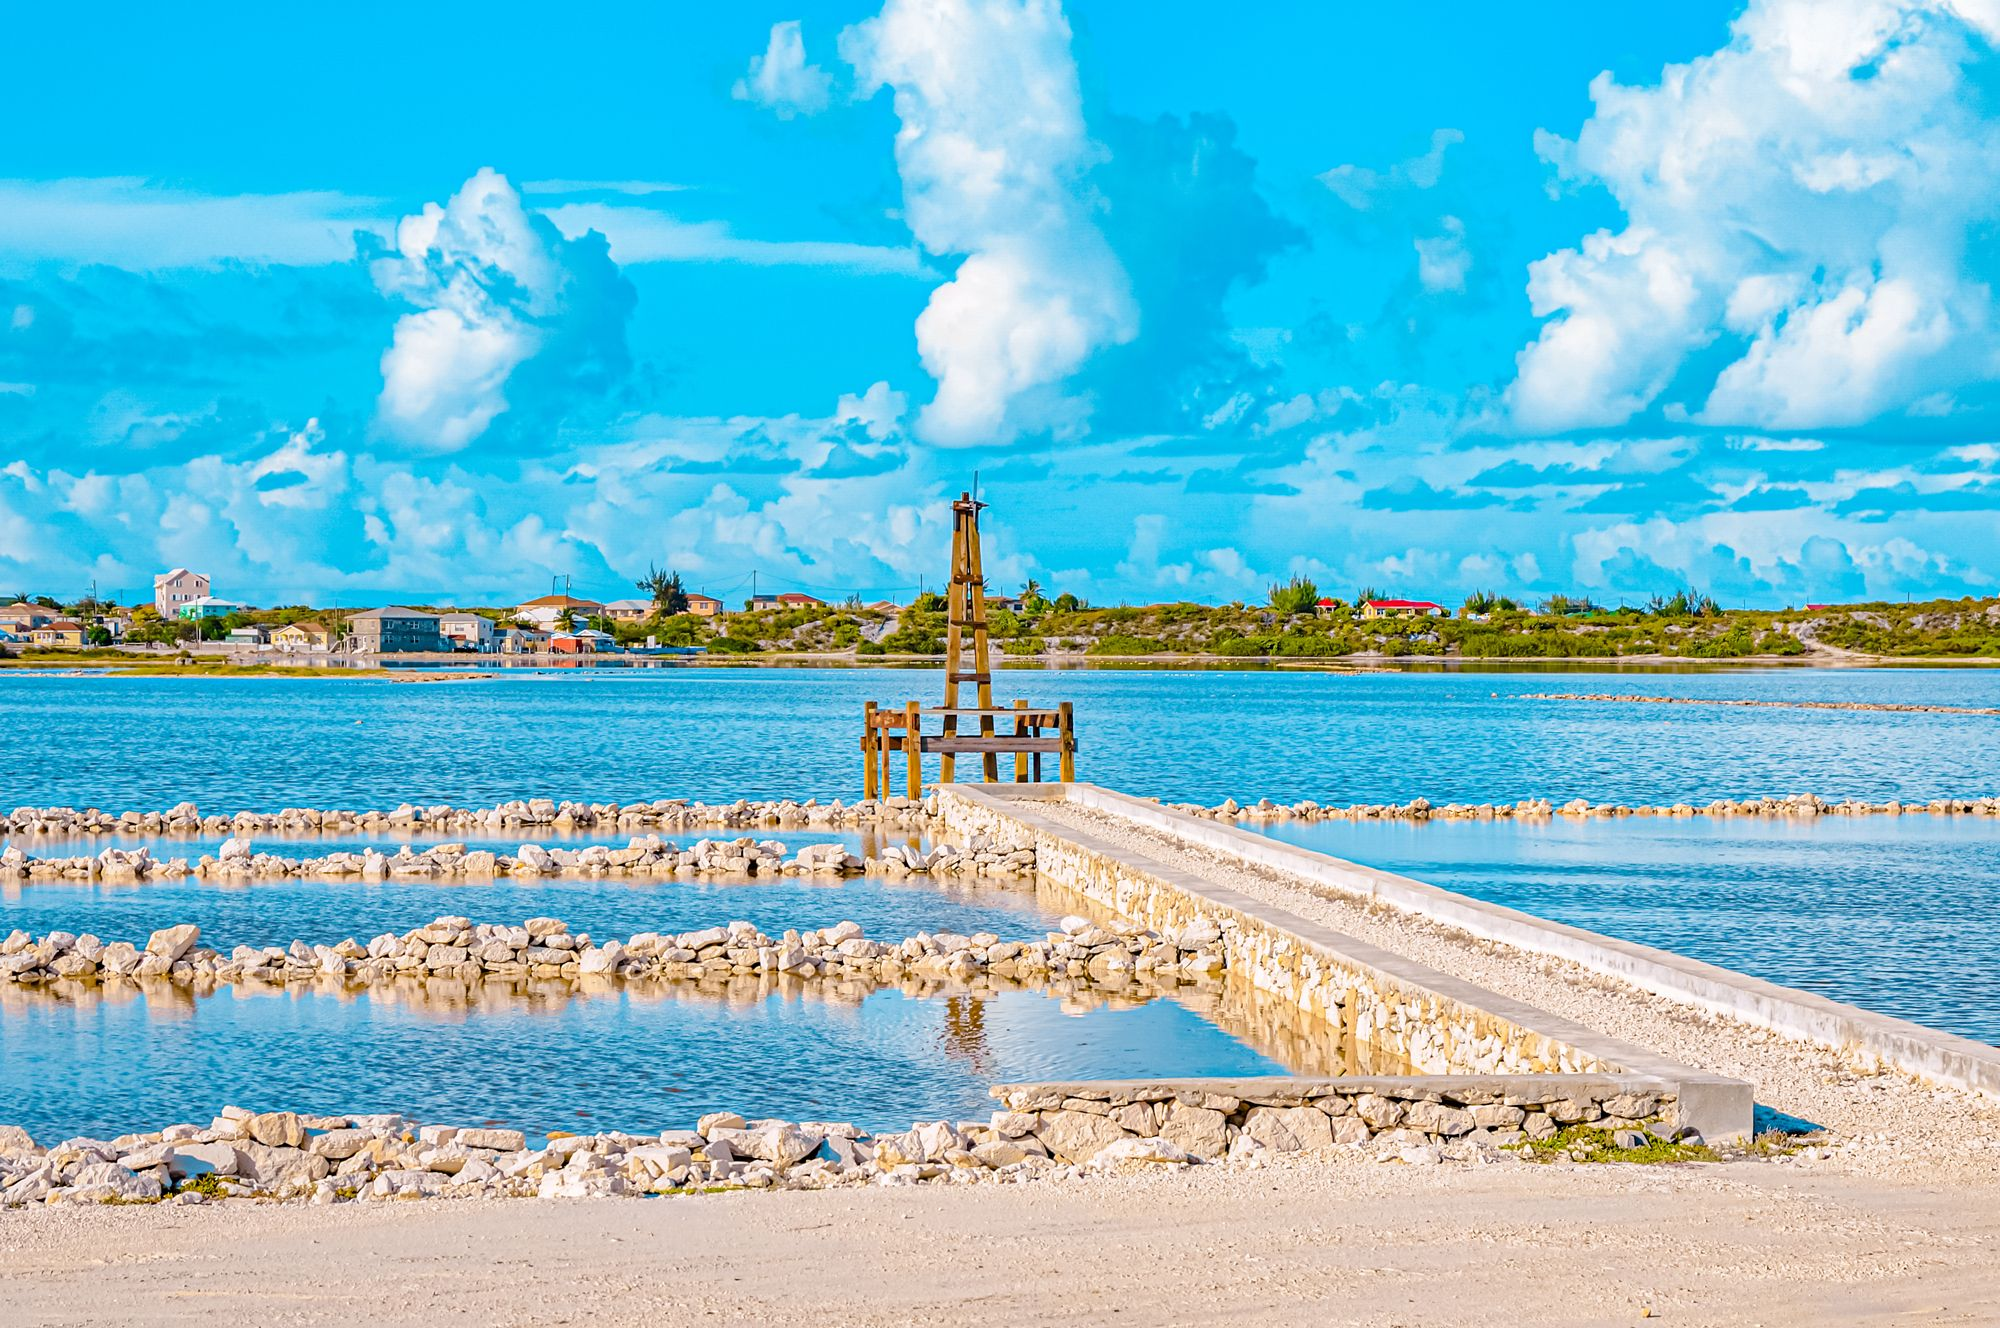 Turks Caicos Salt Evaporation